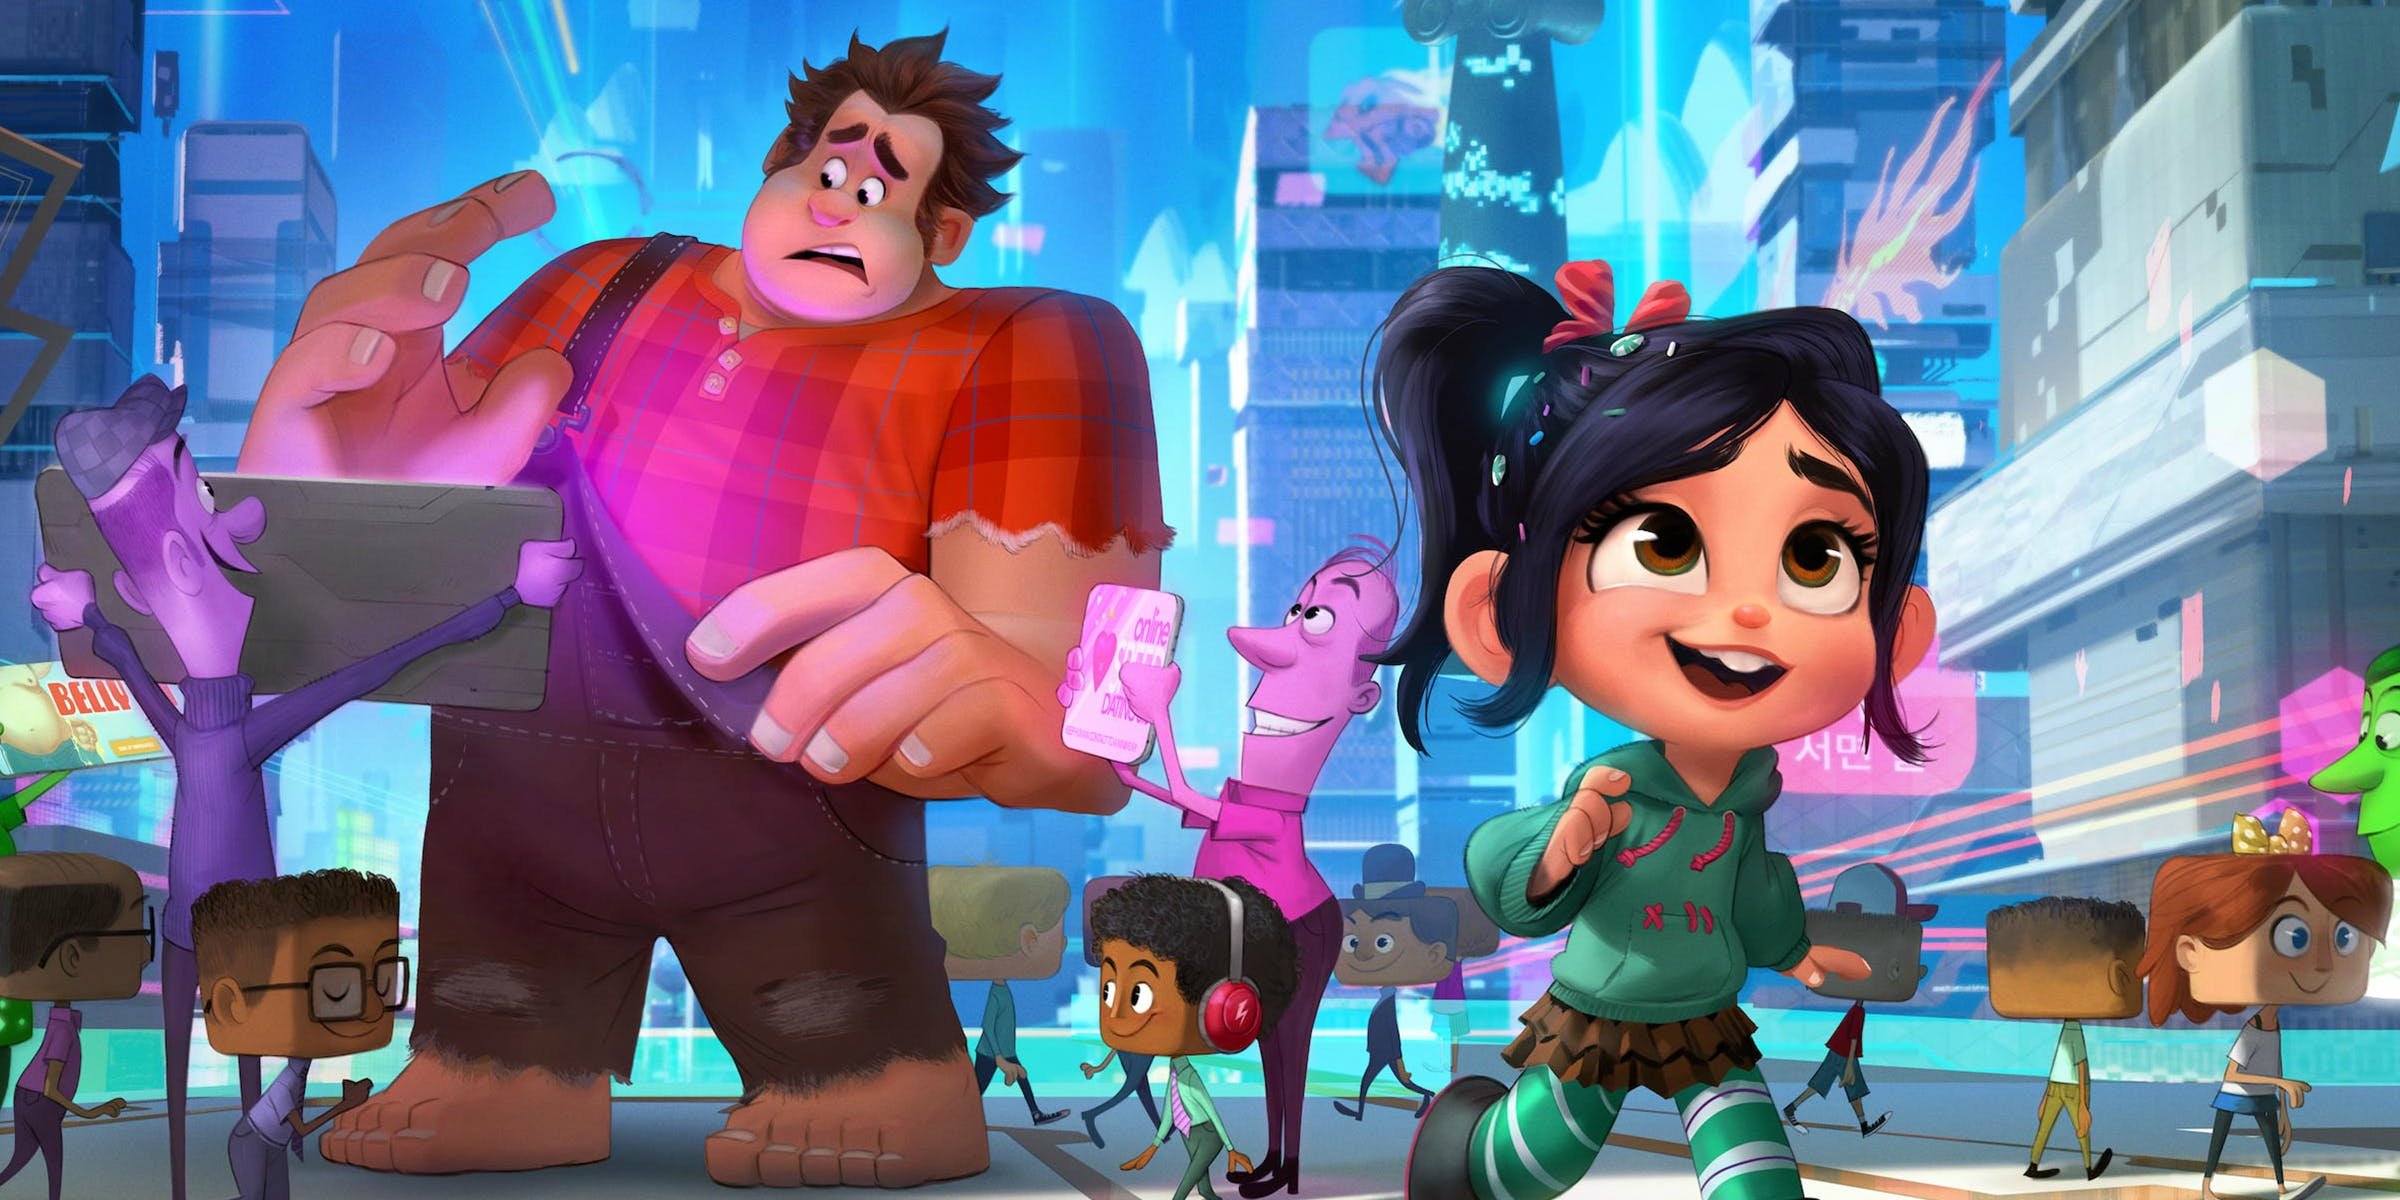 Guarda il trailer di Ralph Spaccattutto 2 Ralph Breaks the Internet | Collater.al 3